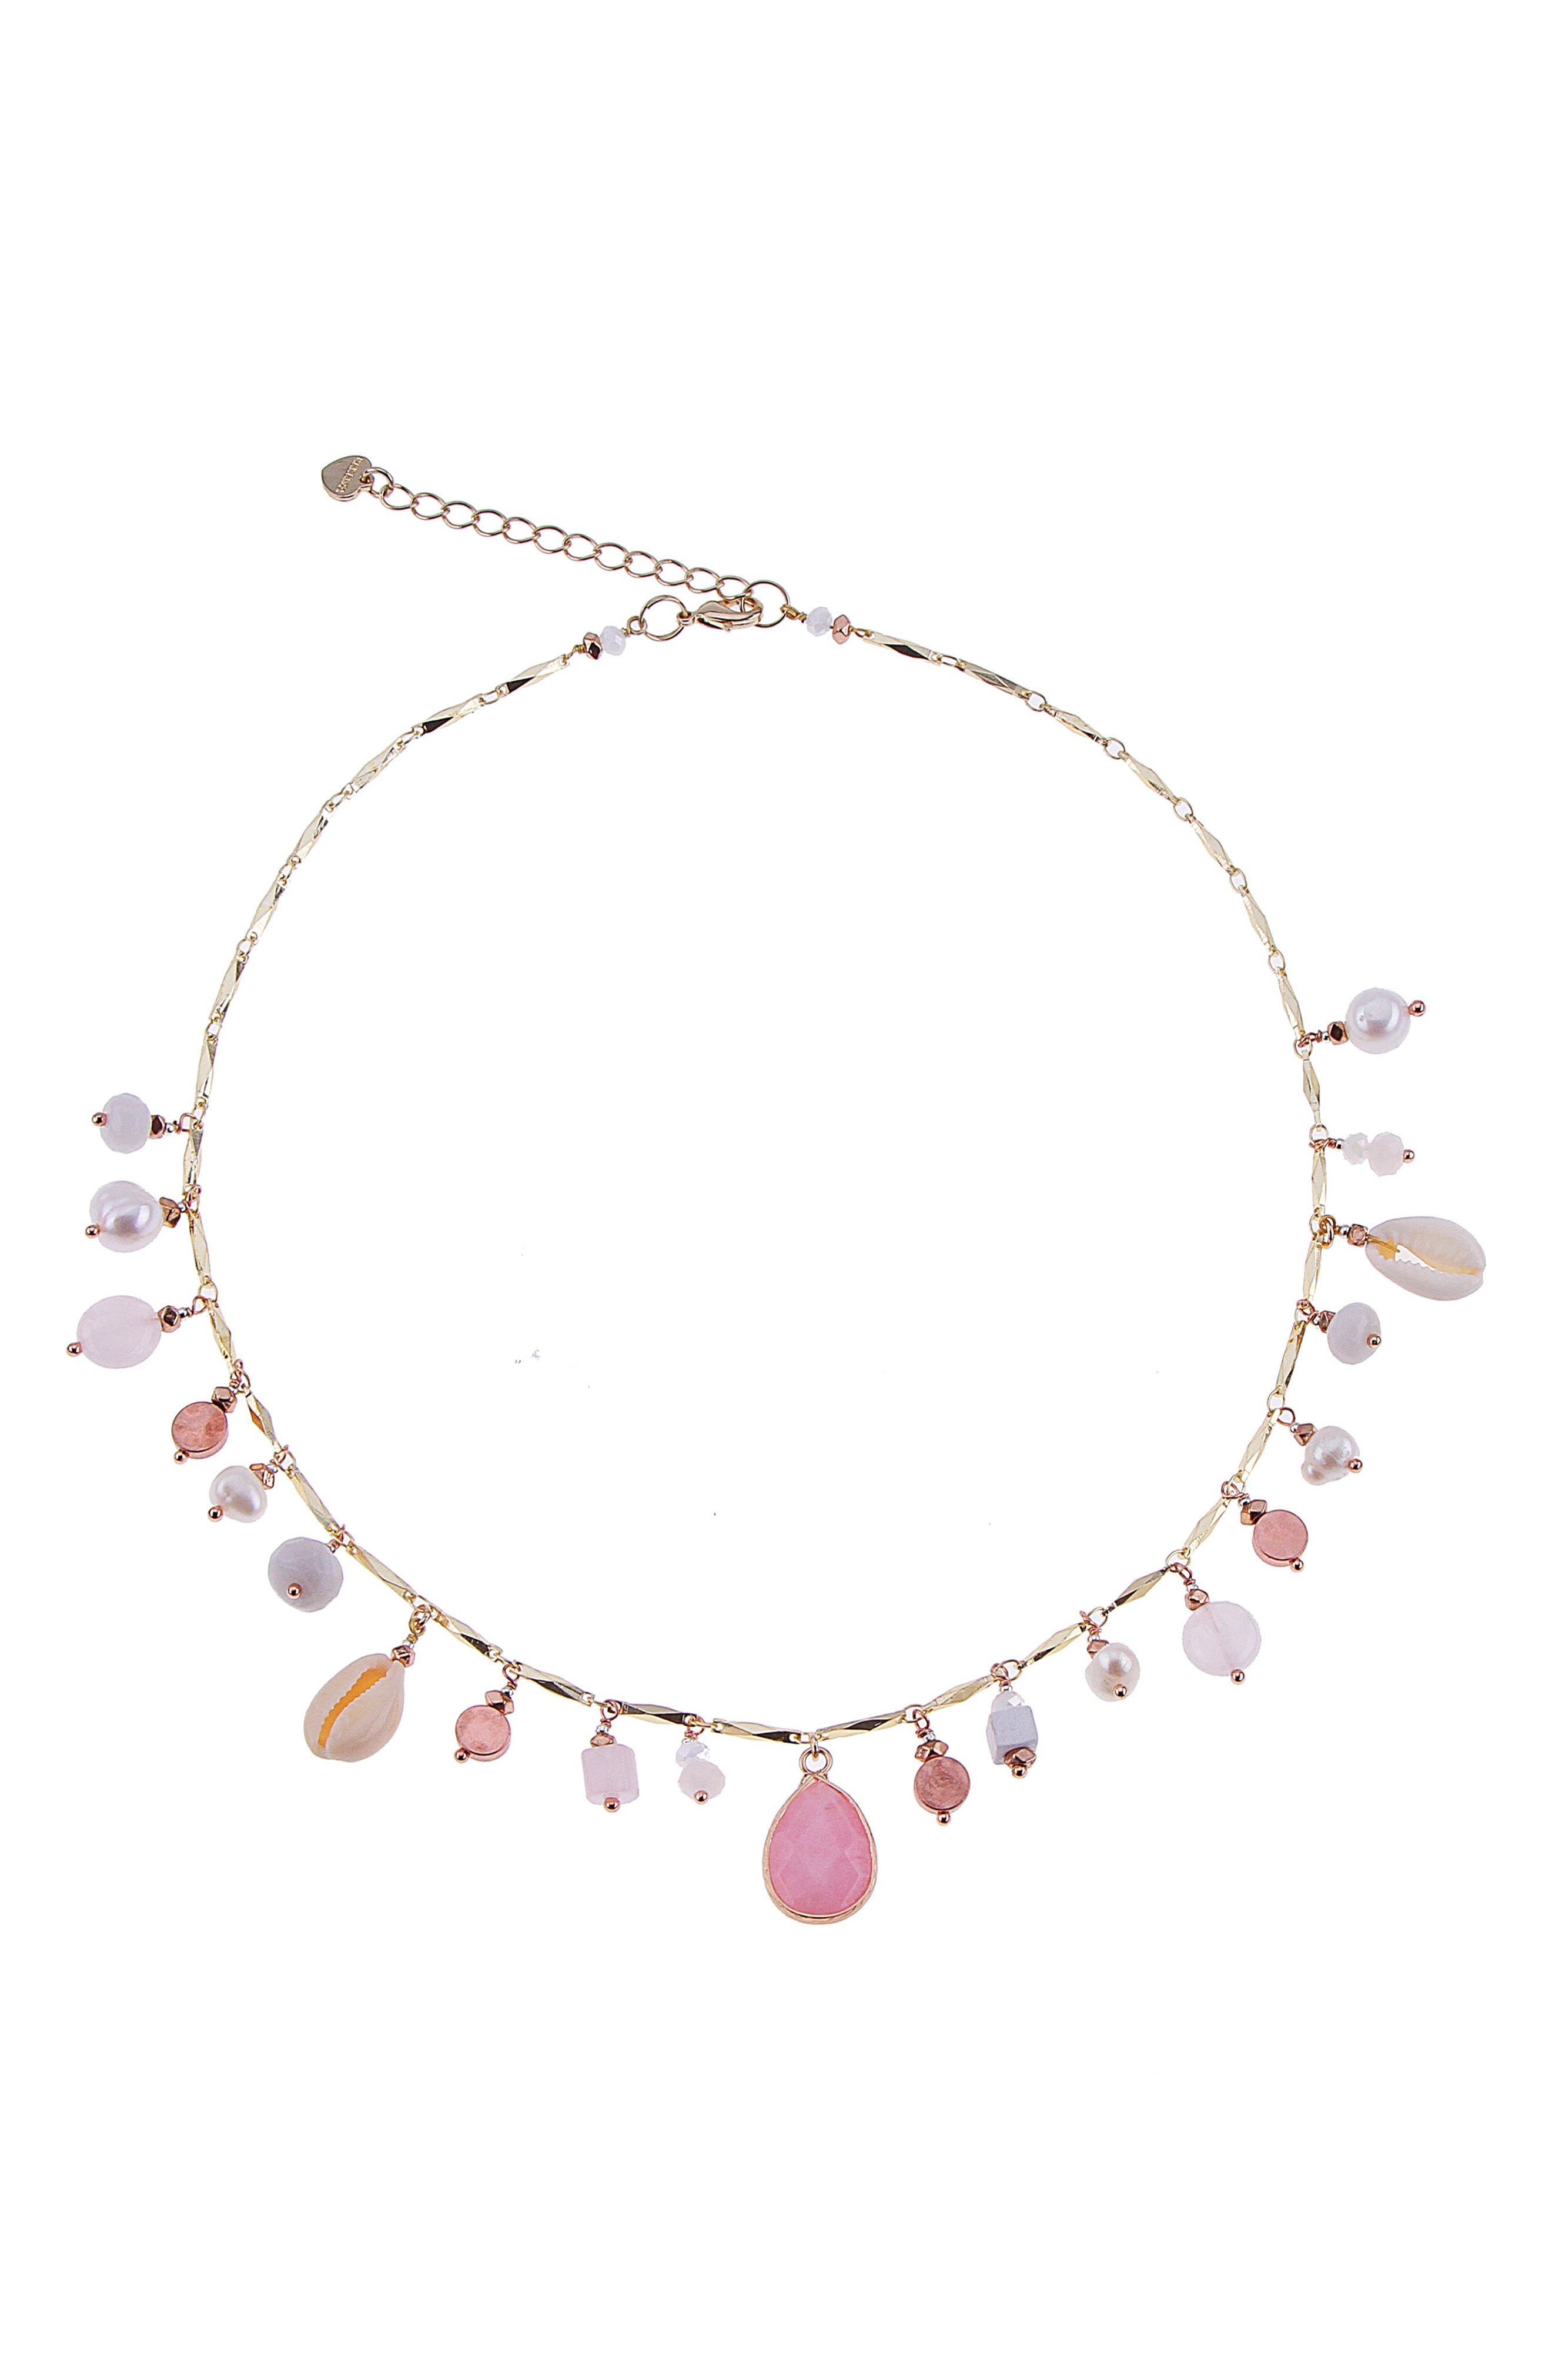 Dainty Stone Freshwater Pearl, Agate & Moonstone Charm Necklace,                             Main thumbnail 1, color,                             White